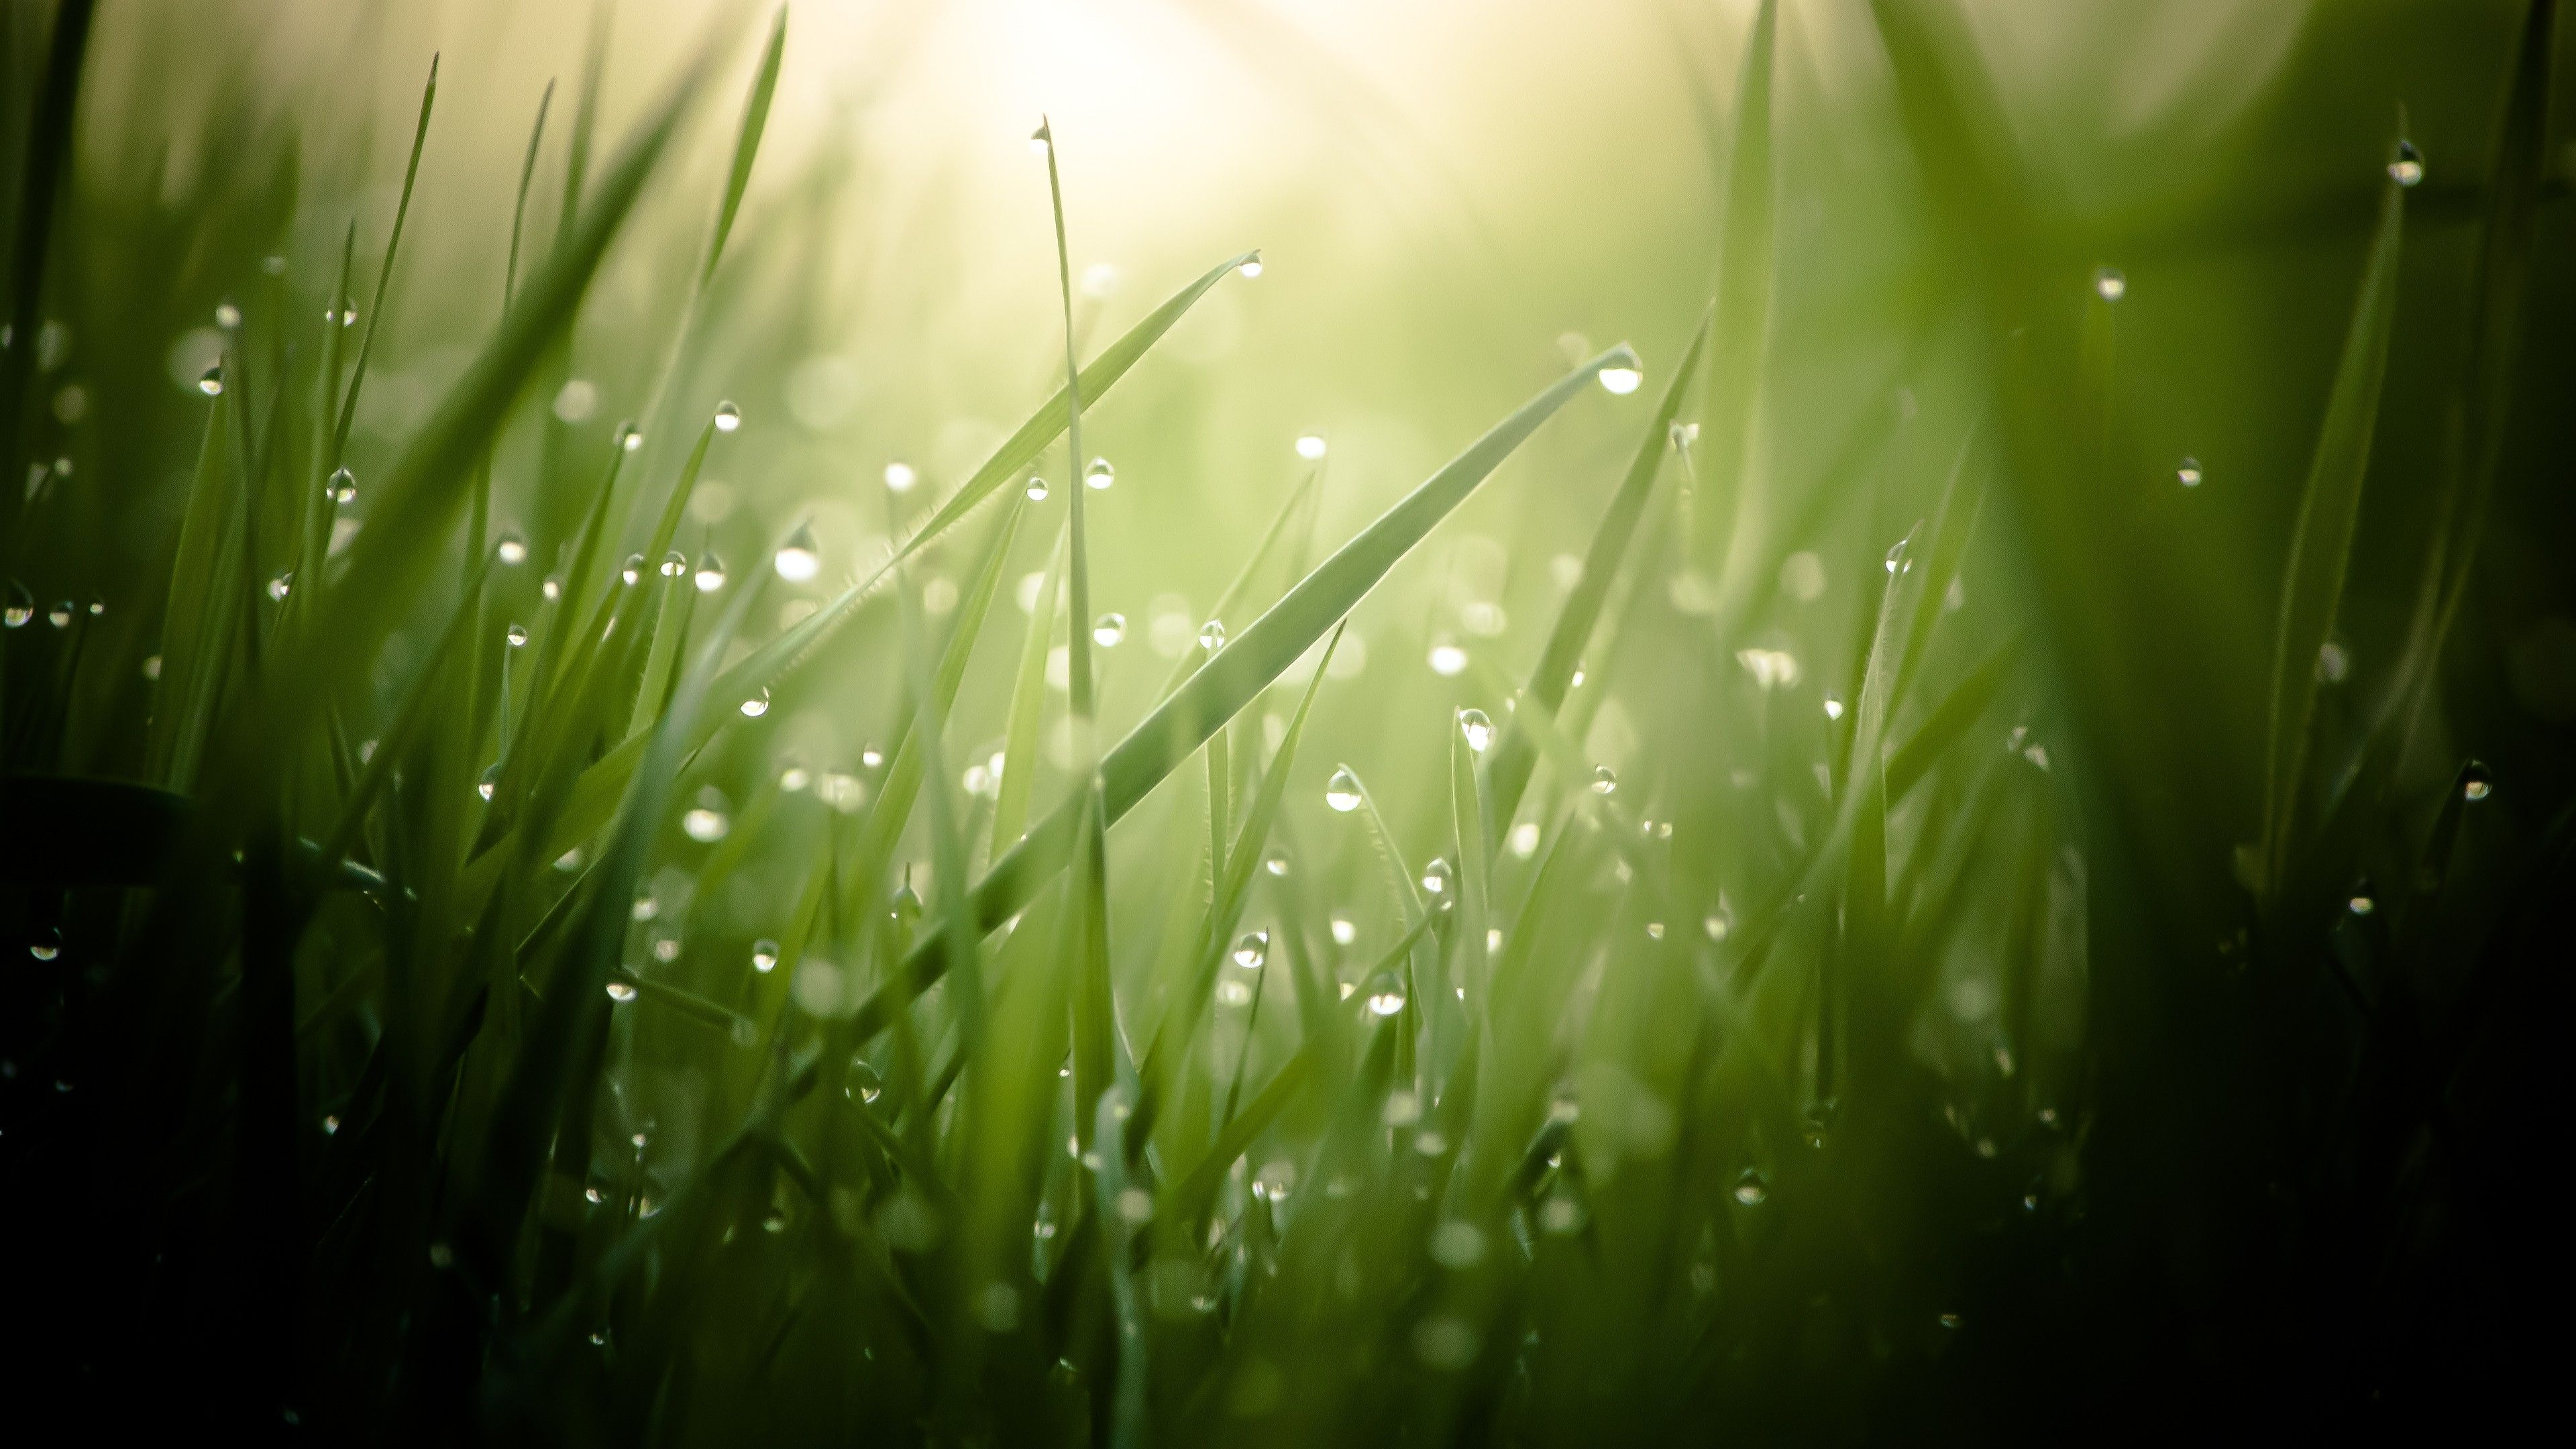 Grass 4k Hd Wallpaper Green Drops Dew Sun Rays 26146 Green Nature Wallpaper Nature Wallpaper Free Wallpaper Backgrounds